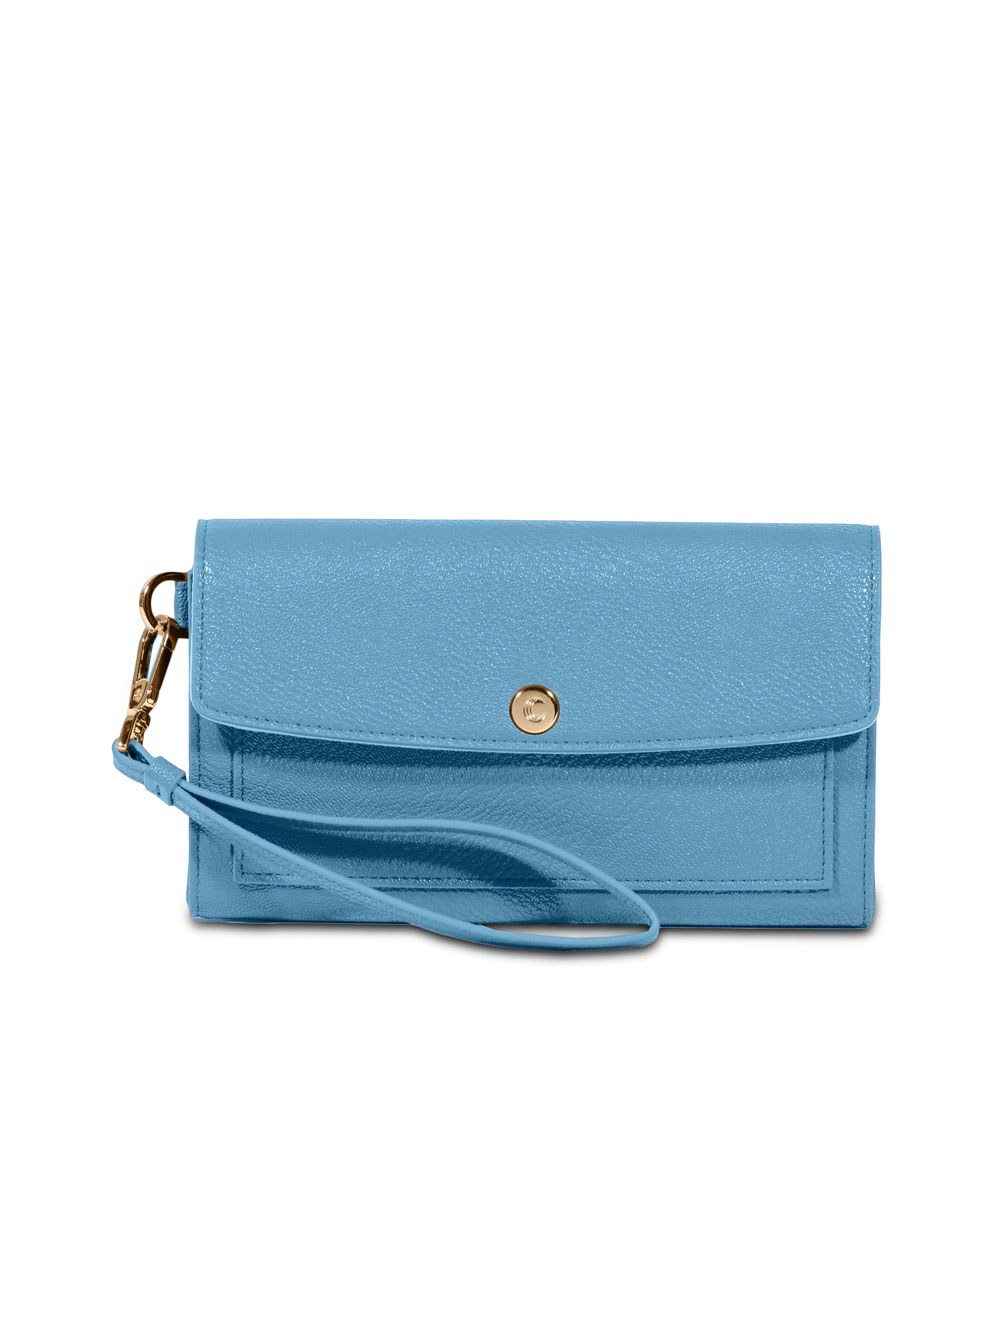 Wallet with wristlet - Turquoise Blue